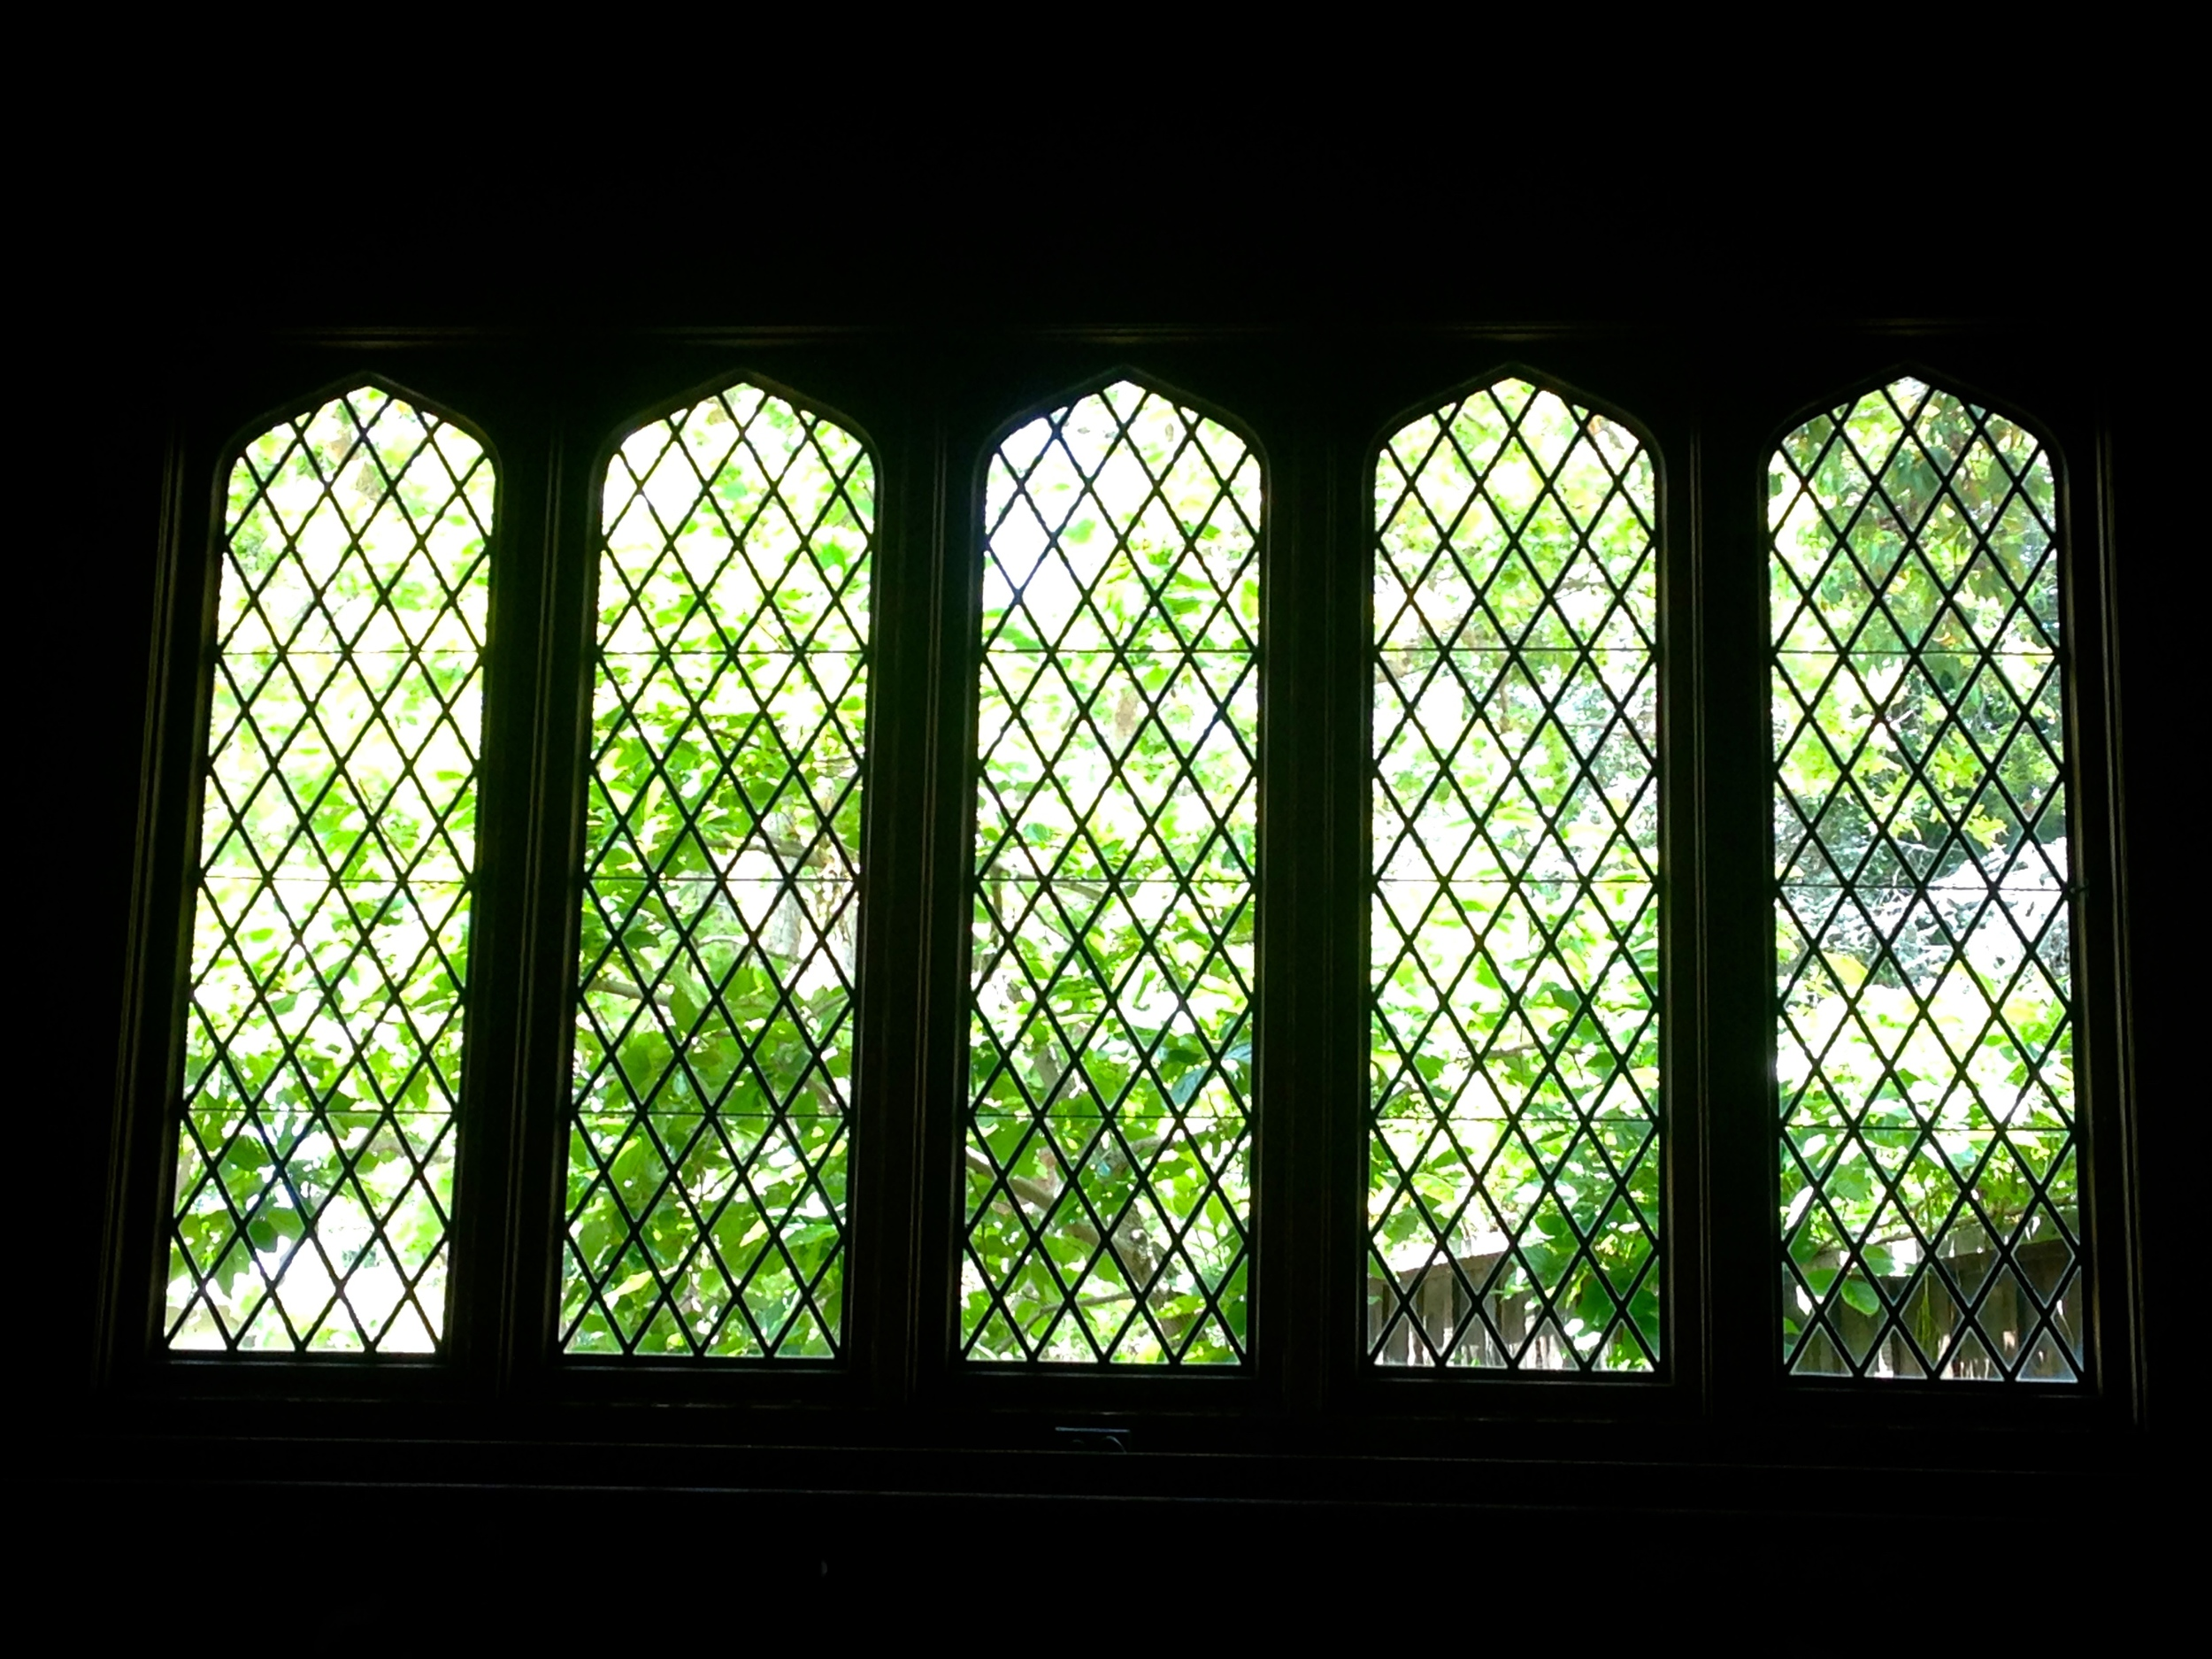 West Window of the Maybeck Recital Hall.